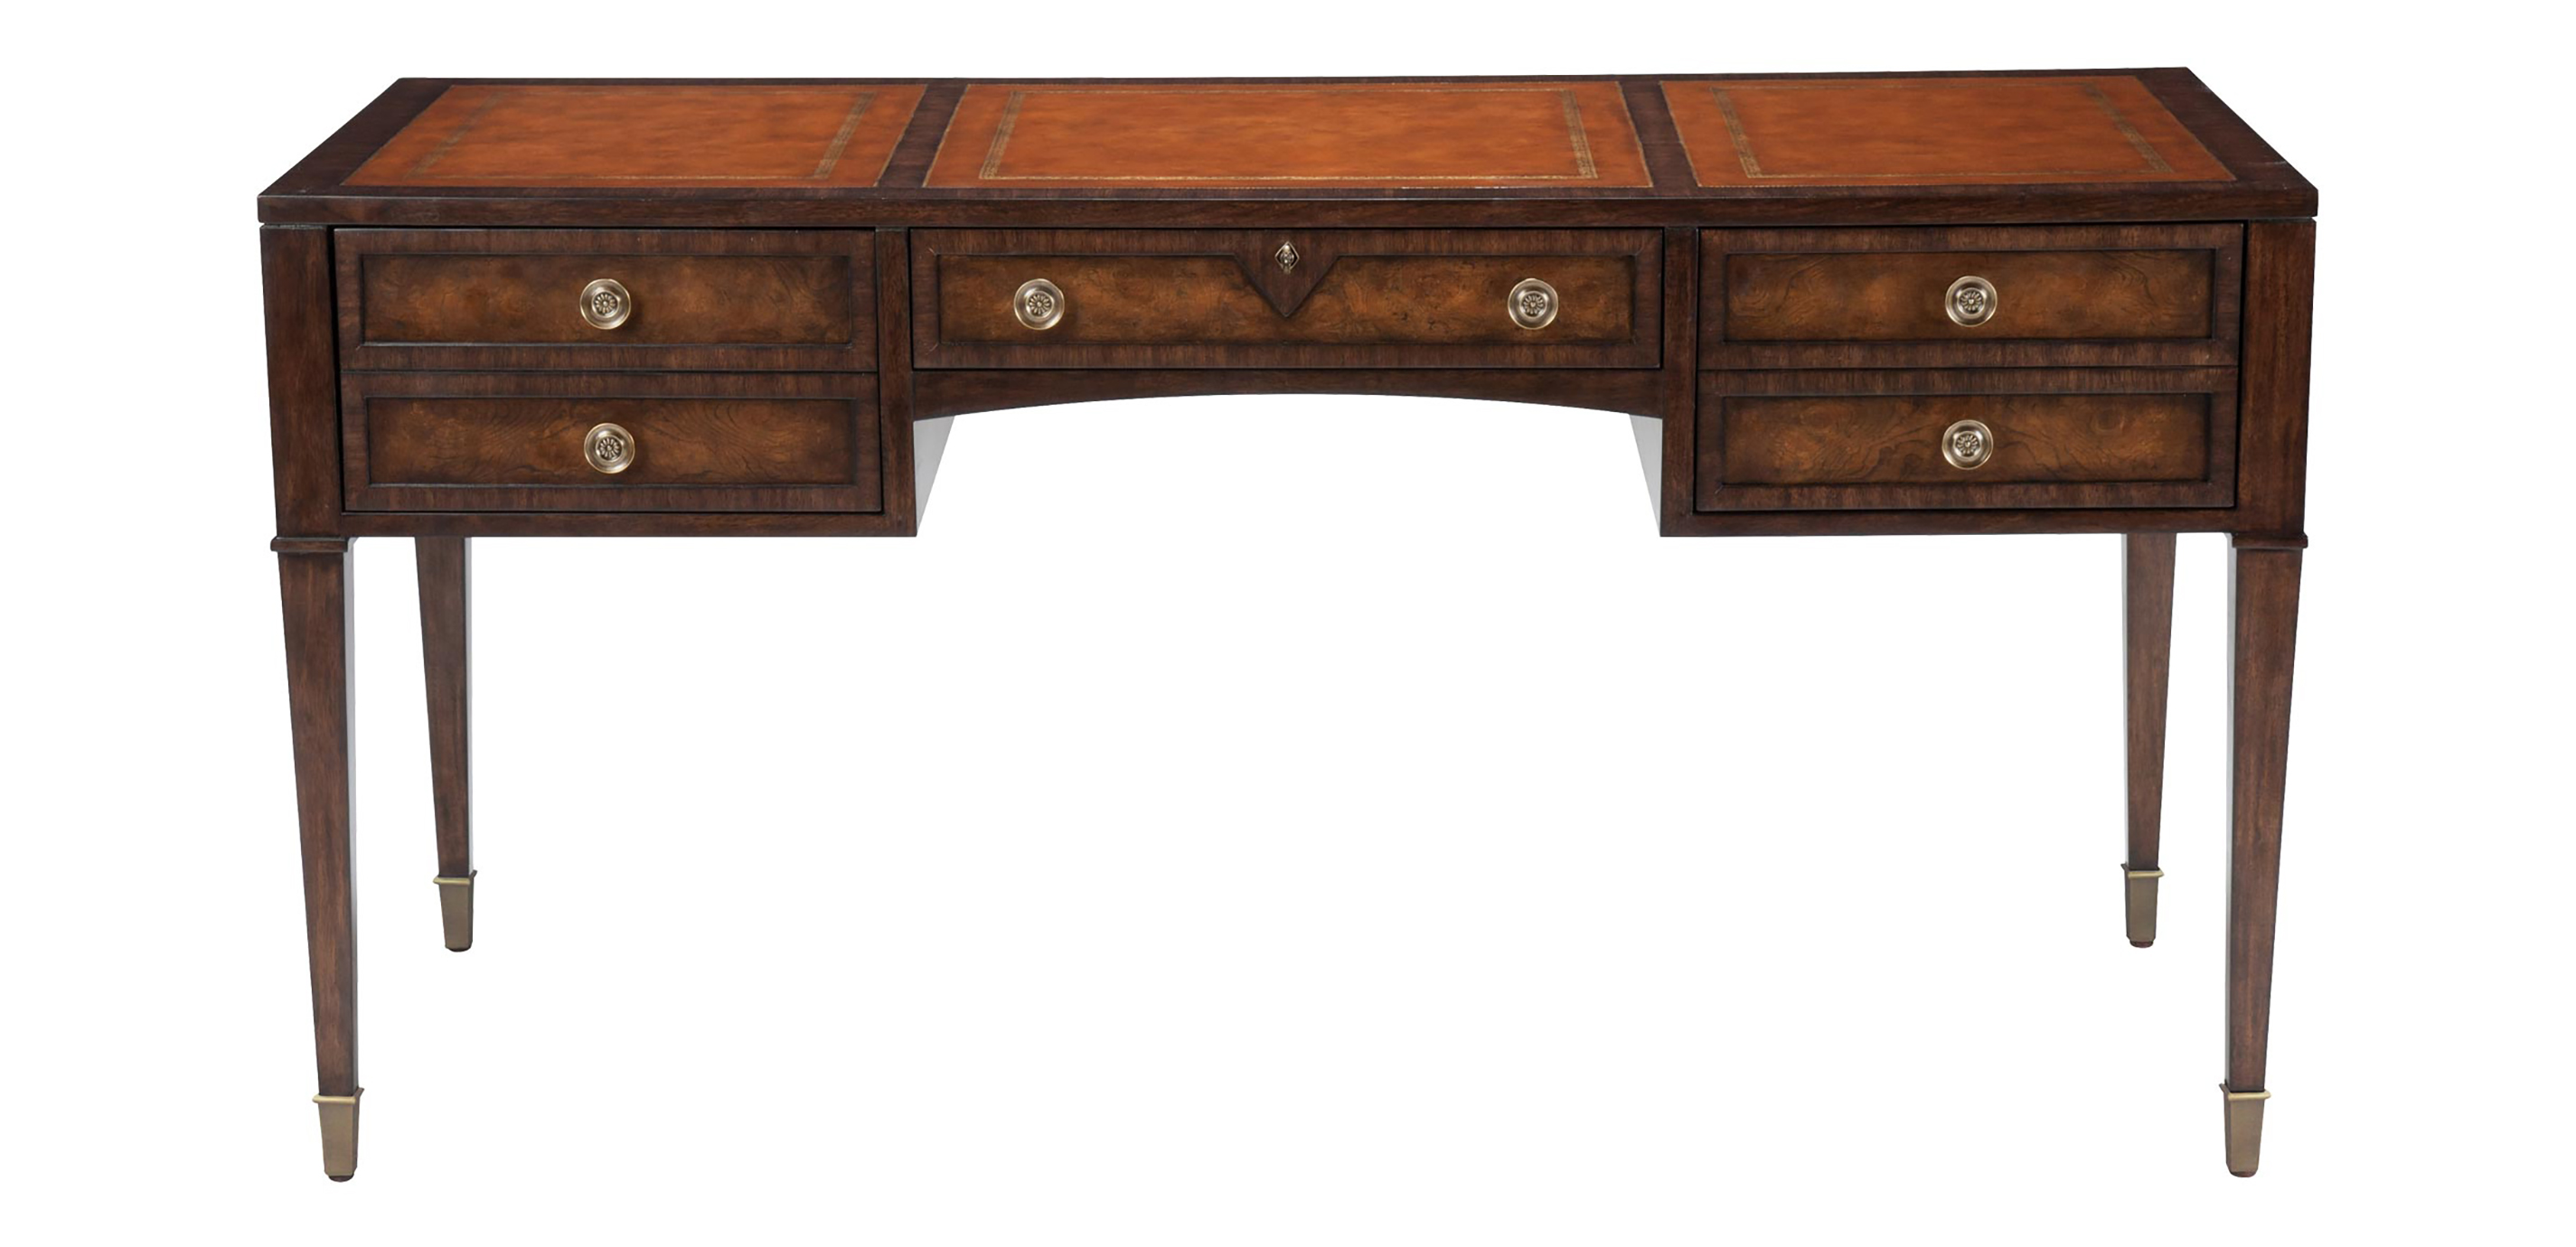 Bennington Desk Desks Ethan Allen - Desks for home office ethan allen